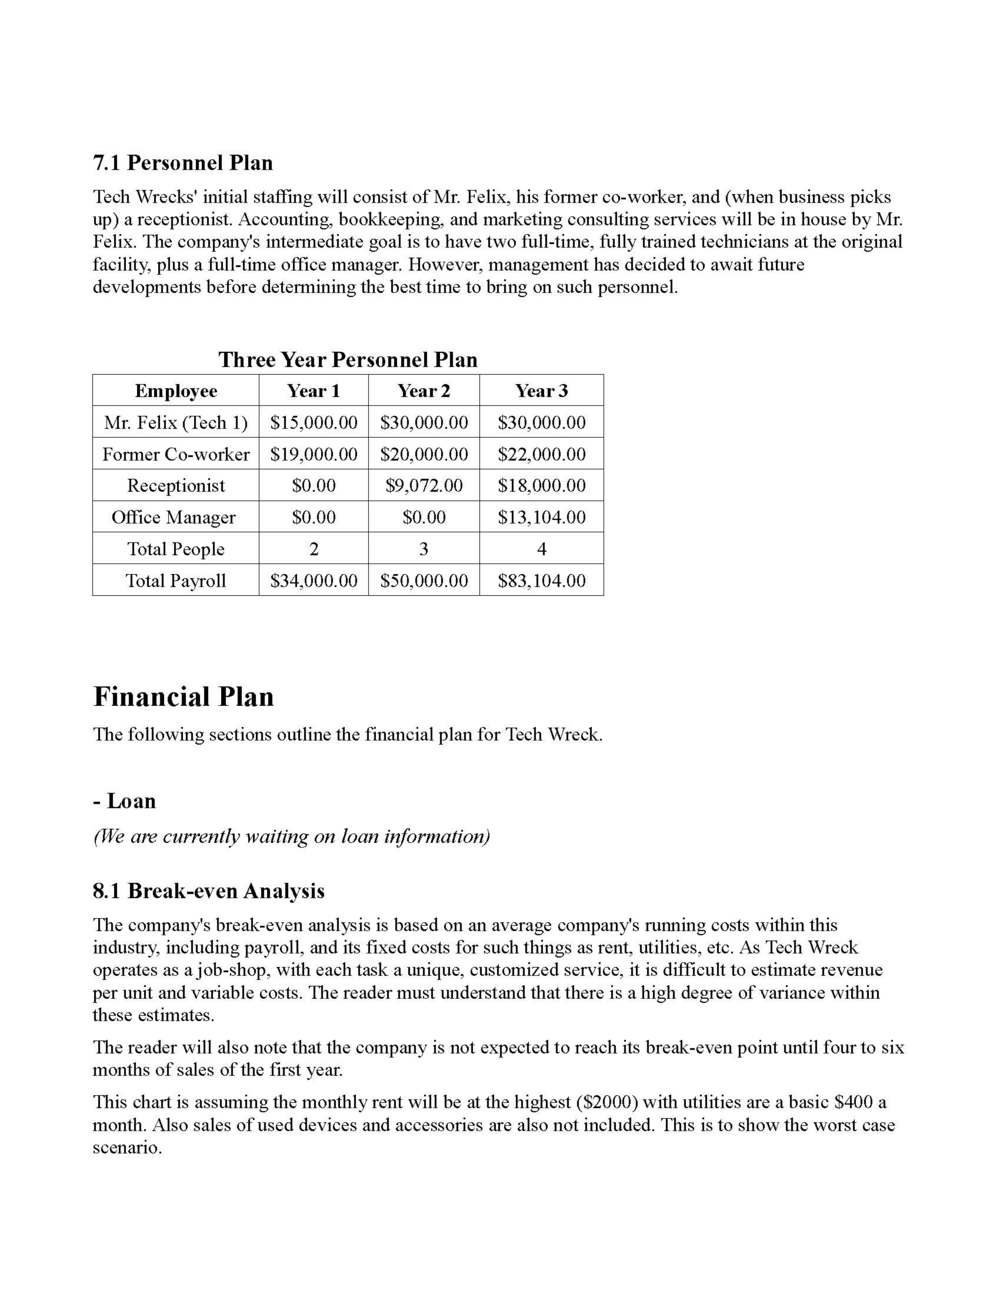 Tech Wreck 3 Year Business Plan_Page_16.jpg